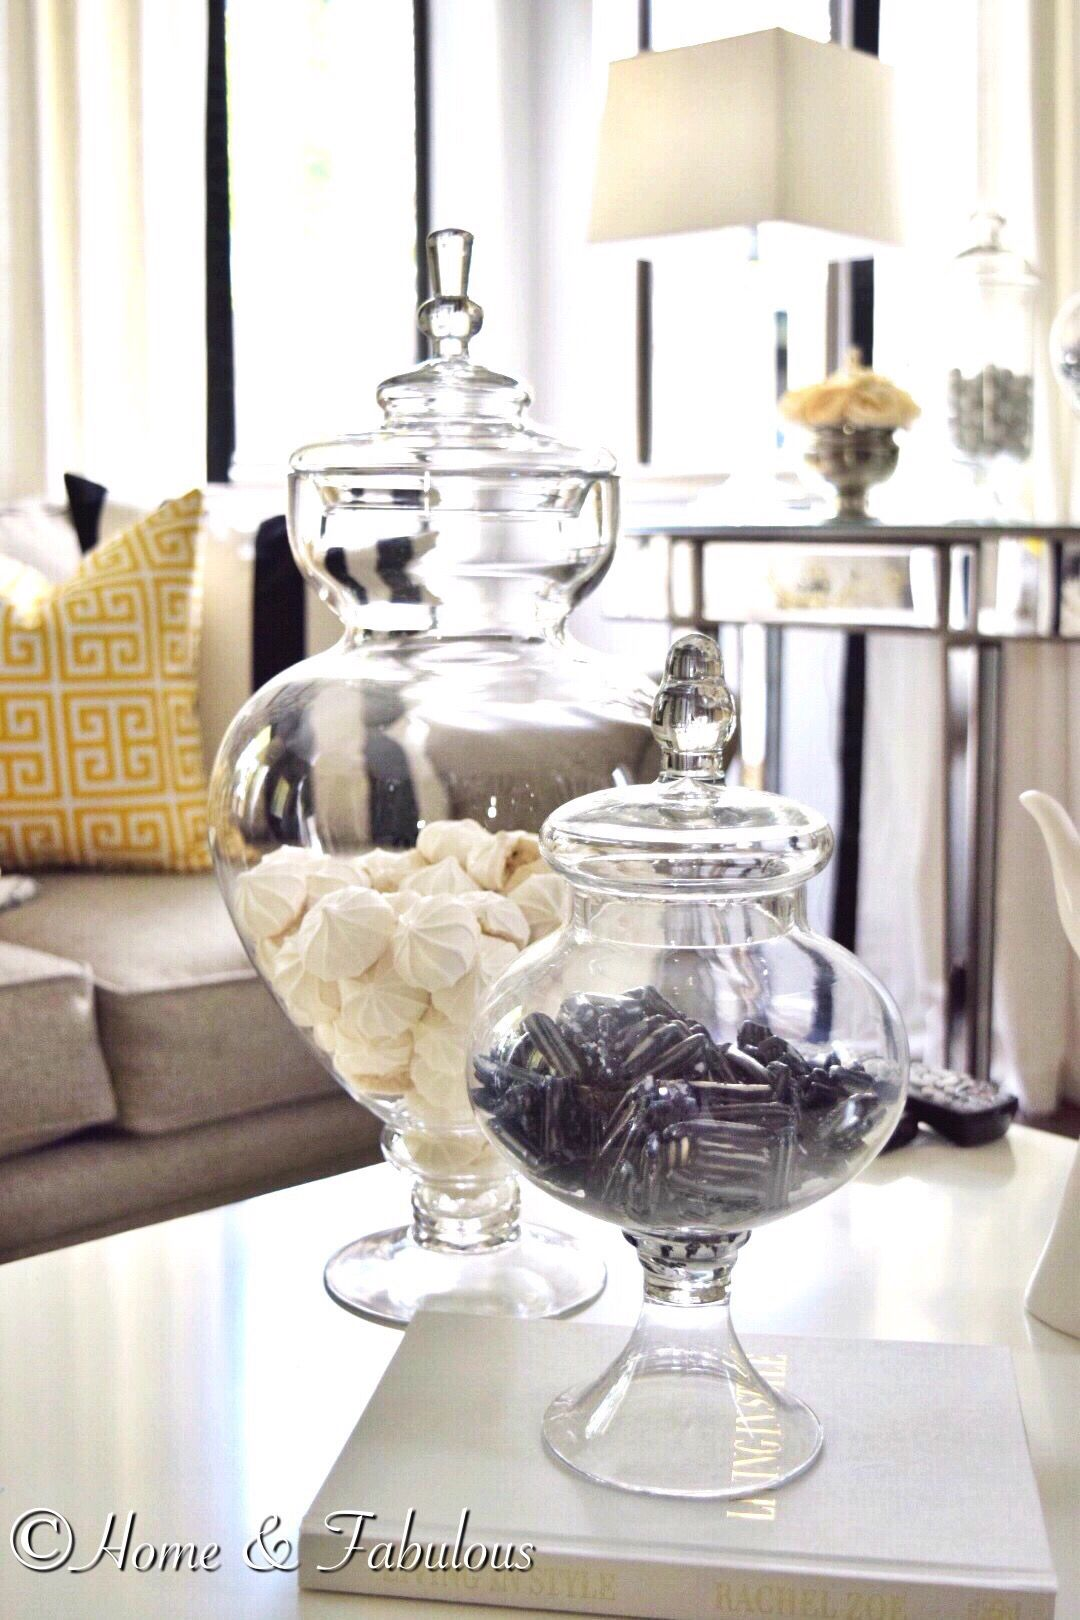 Looking For Something Different To Use As A Table Centerpiece Try These Beautiful Apothecary Jars Kitchen Island Decor Apothecary Jars Decor Apothecary Decor